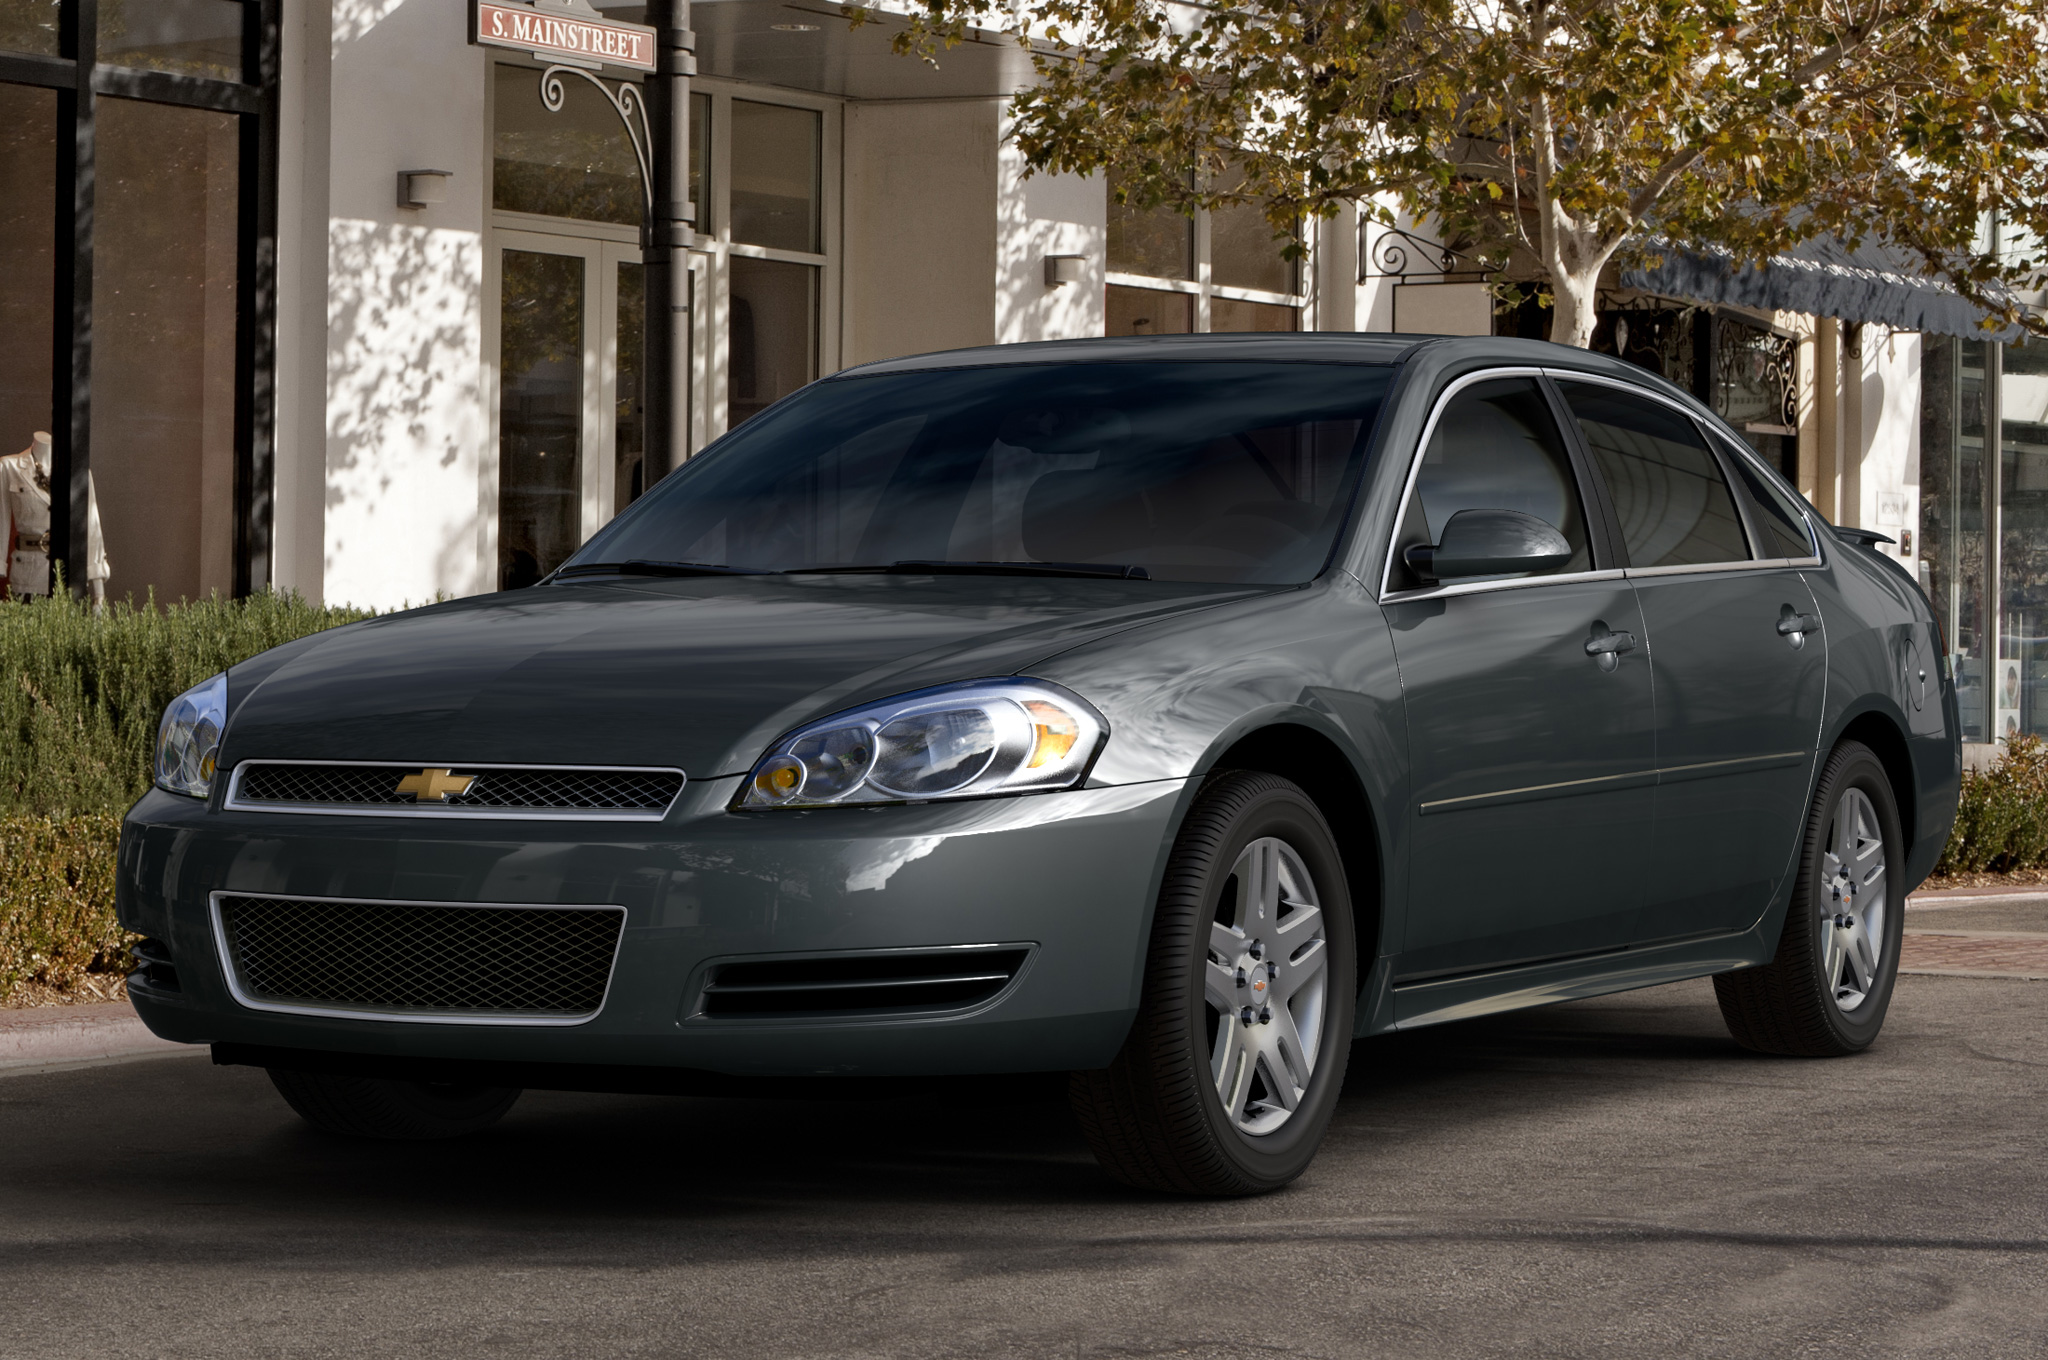 chevrolet impala limited production extended to 2016 for fleet use [ 2048 x 1360 Pixel ]